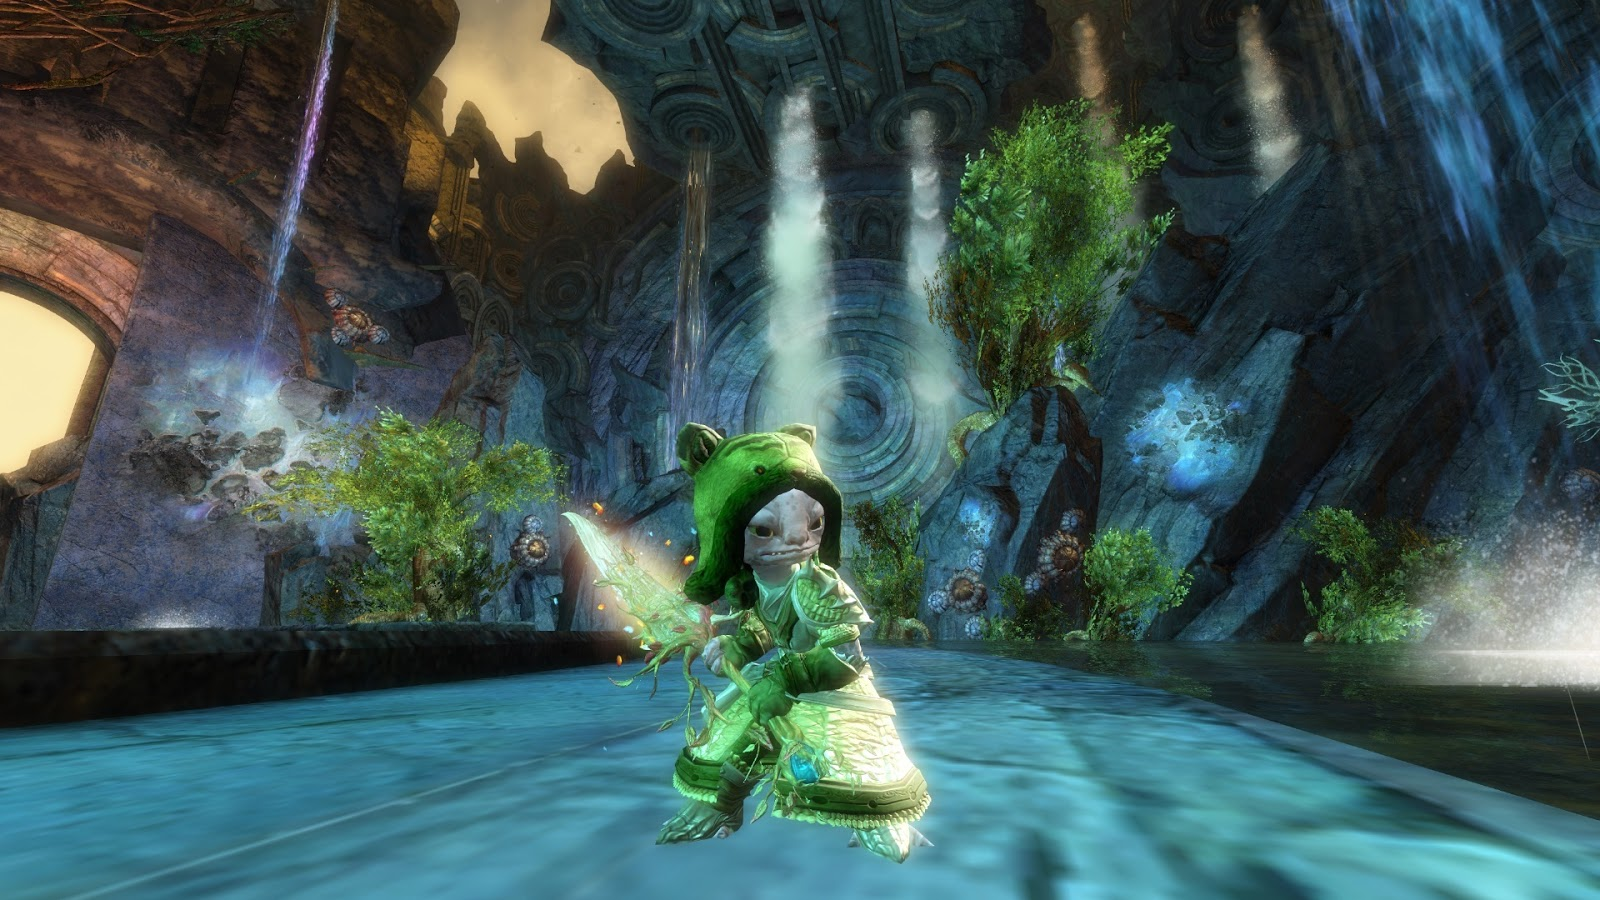 Guild wars 2 gw2 darkened desires gw2 fashion - Keeping Up With Current Events Gw2